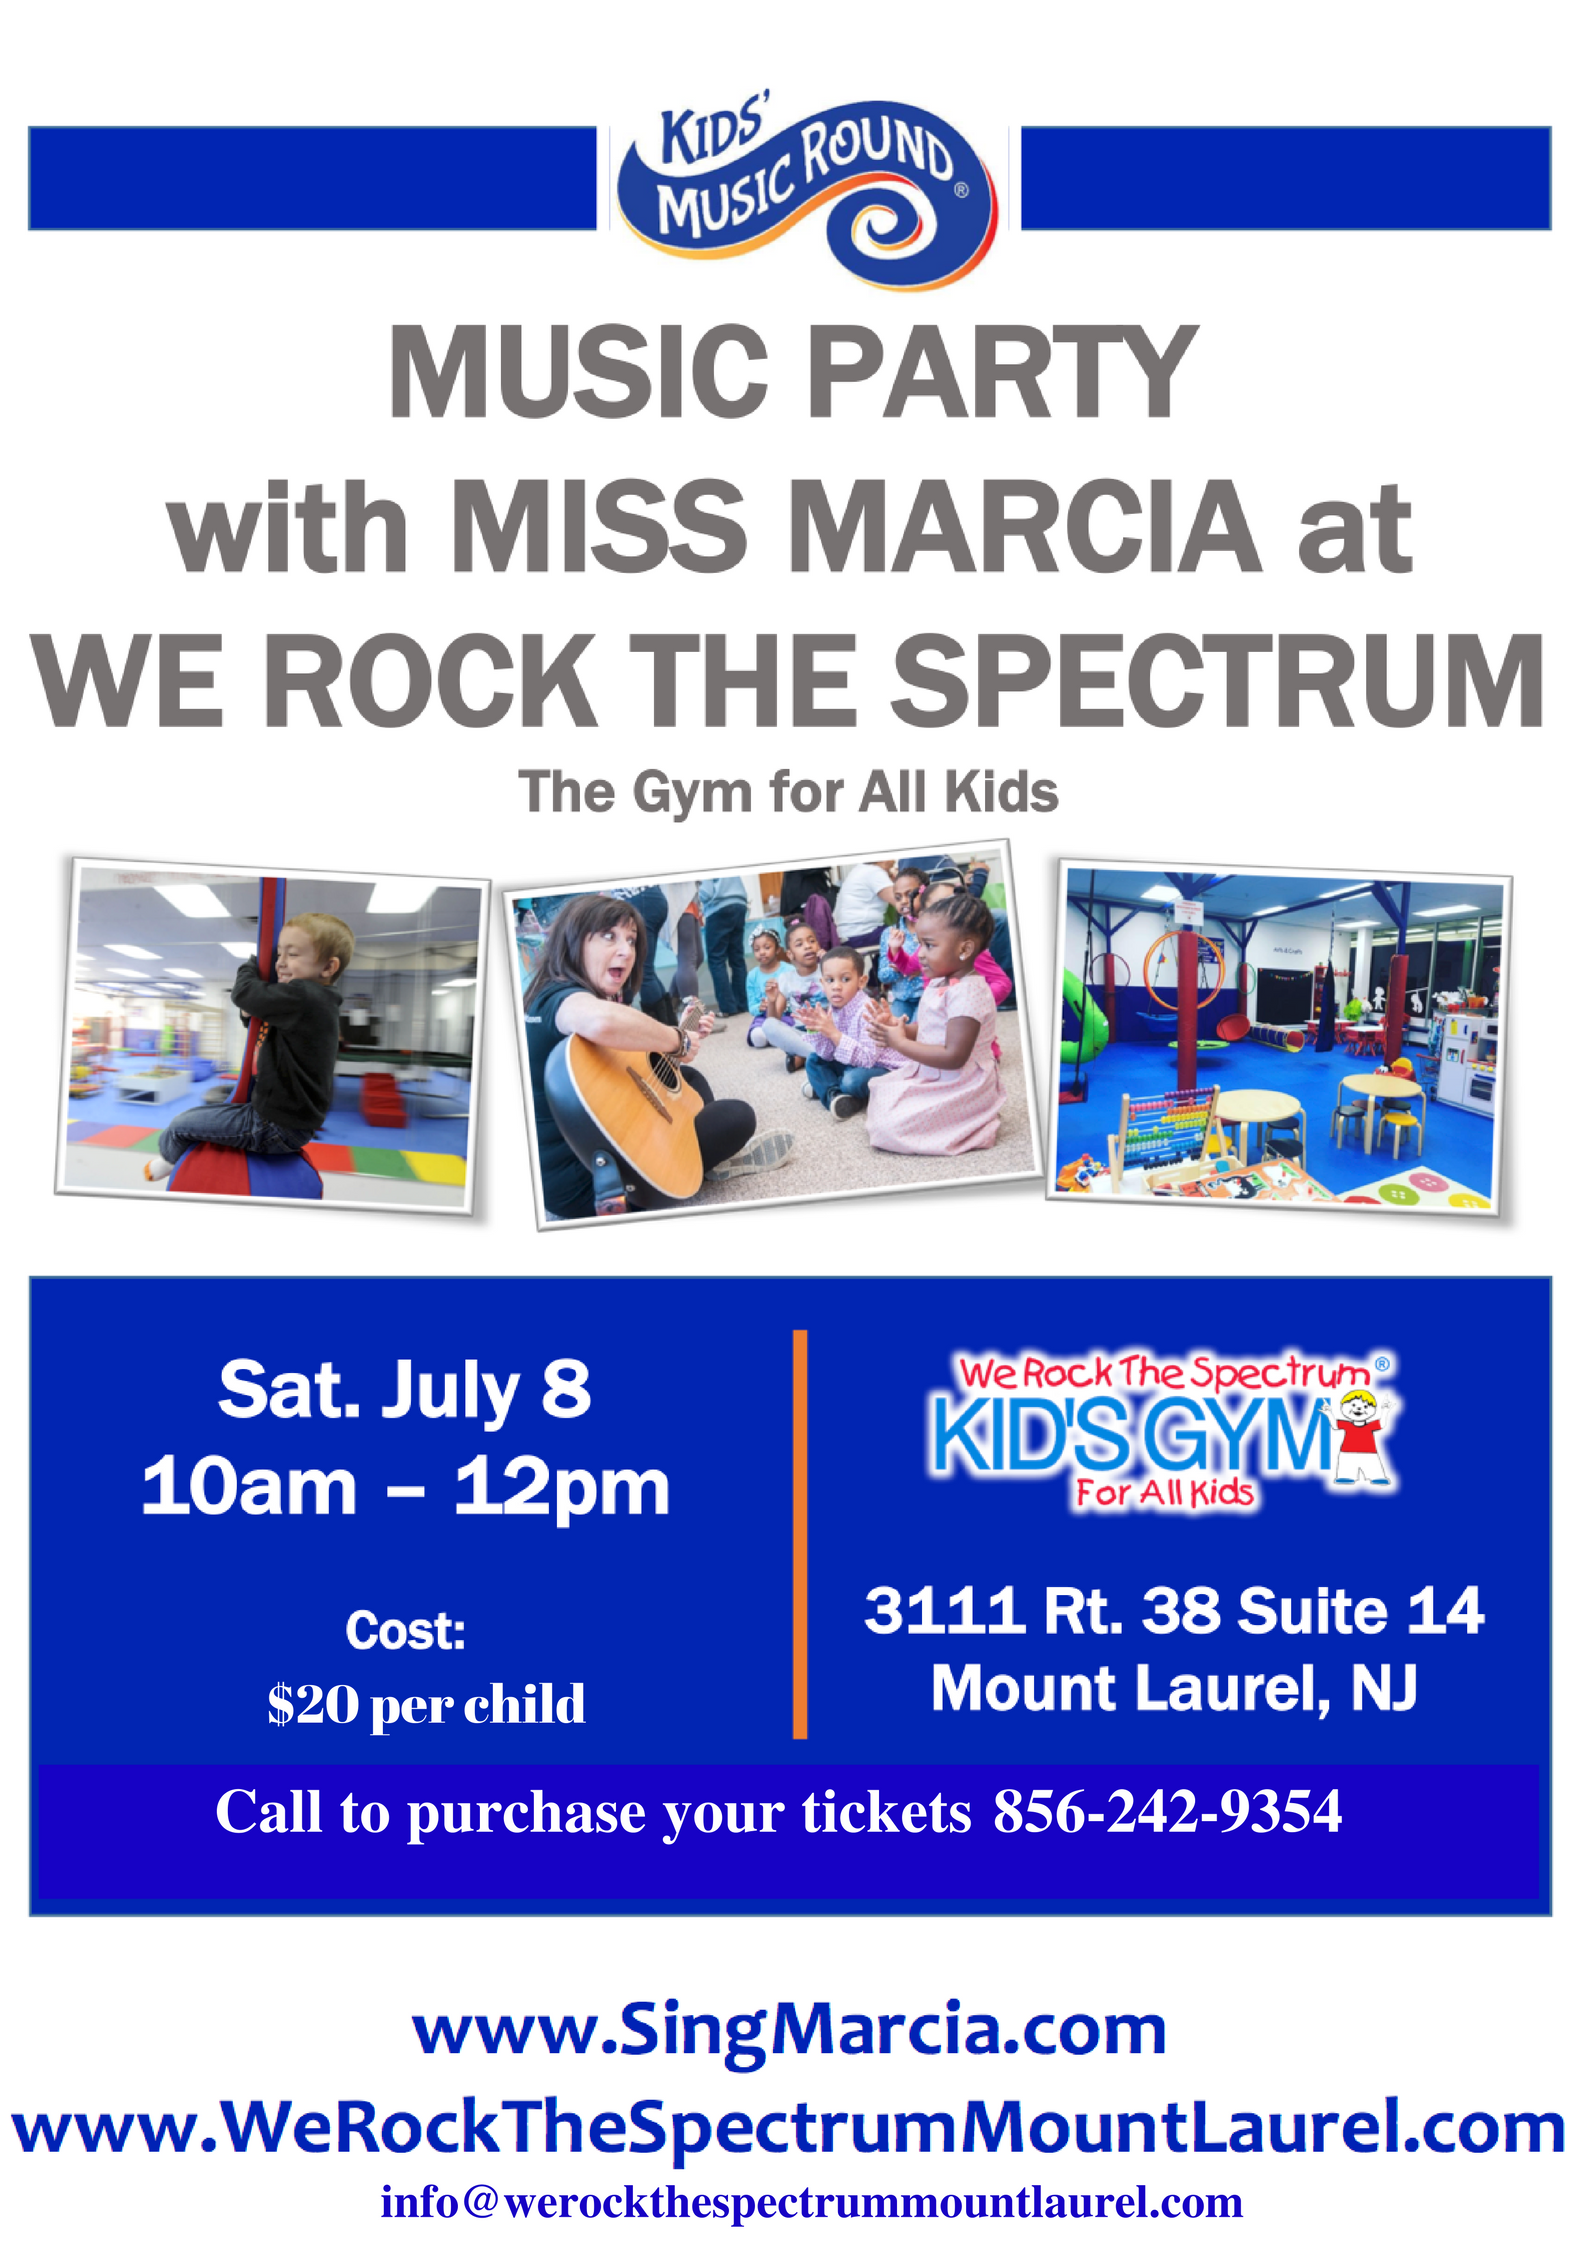 Kid's MusicRound Music Party